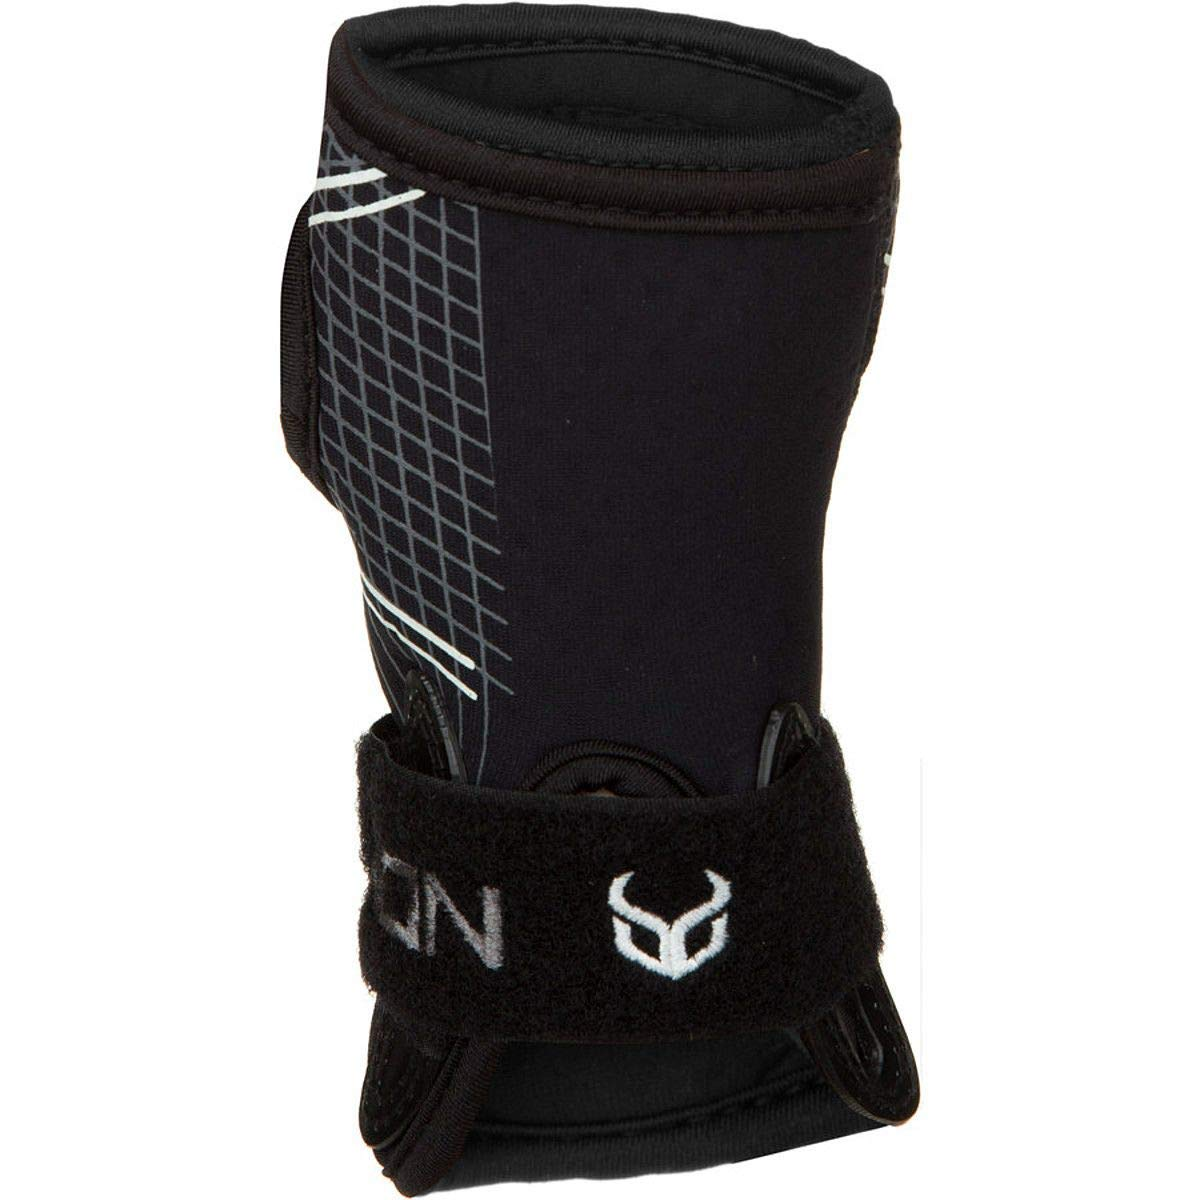 Demon Snow Wrist Guard Black, S by Demon